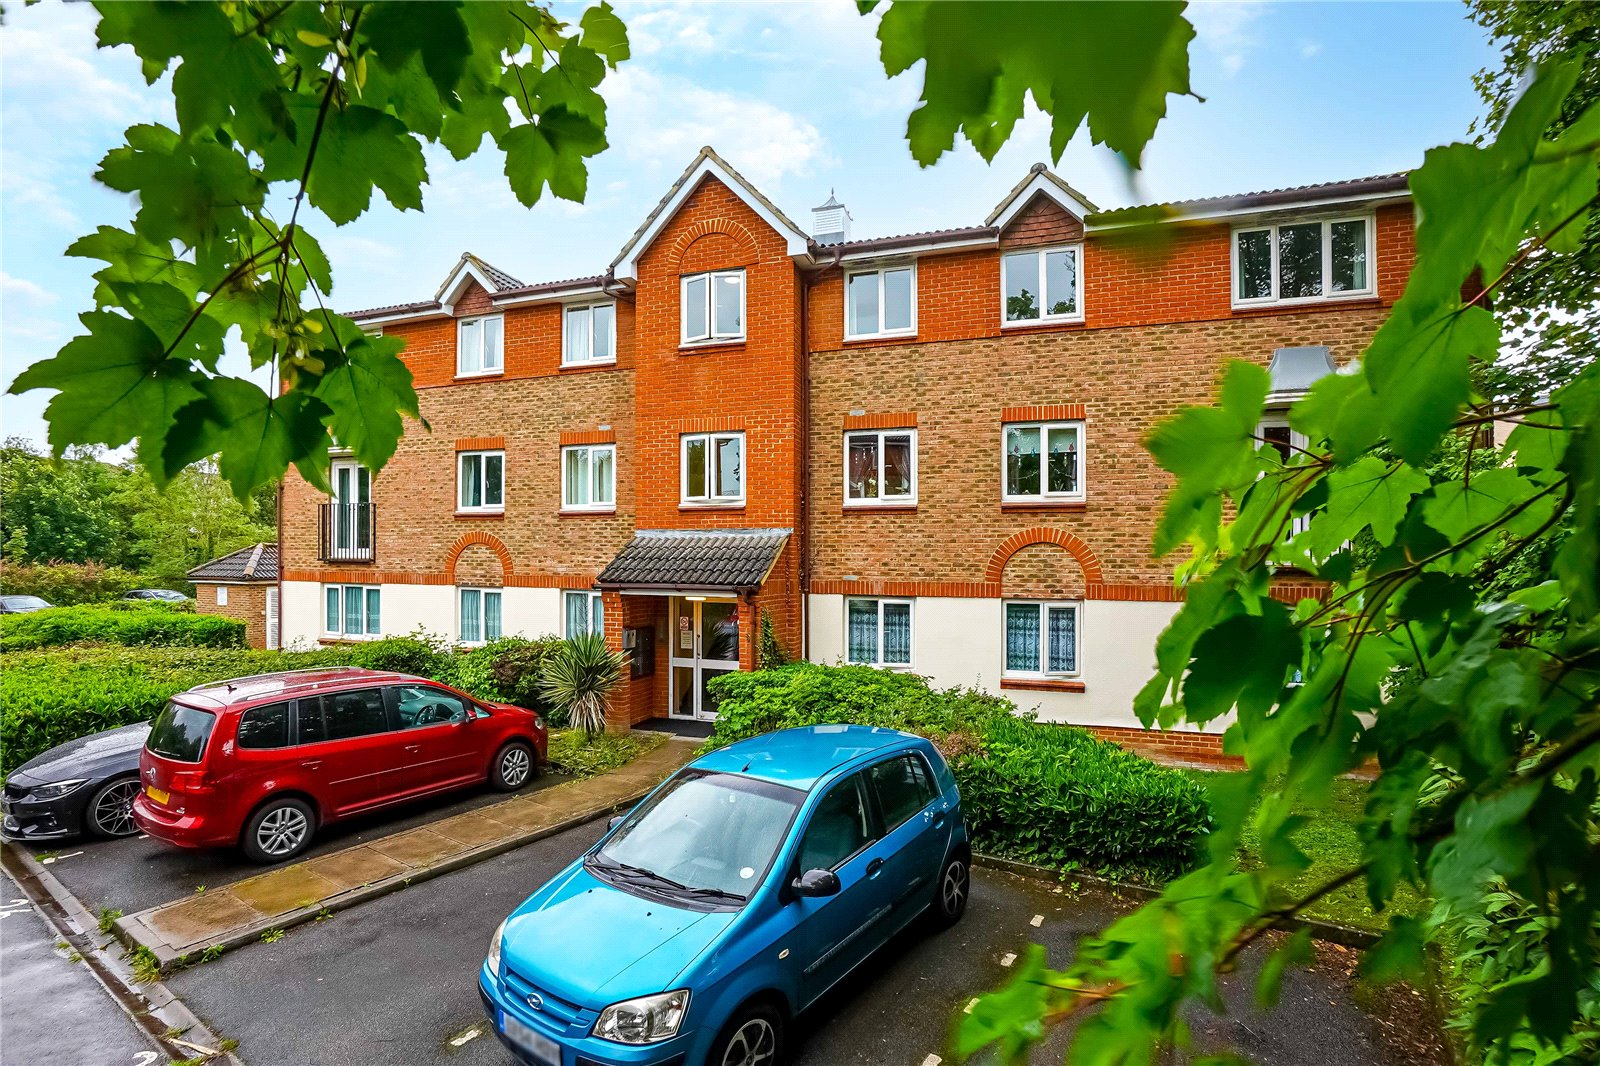 2 bed apartment for sale in Lindisfarne Gardens, Maidstone, ME16